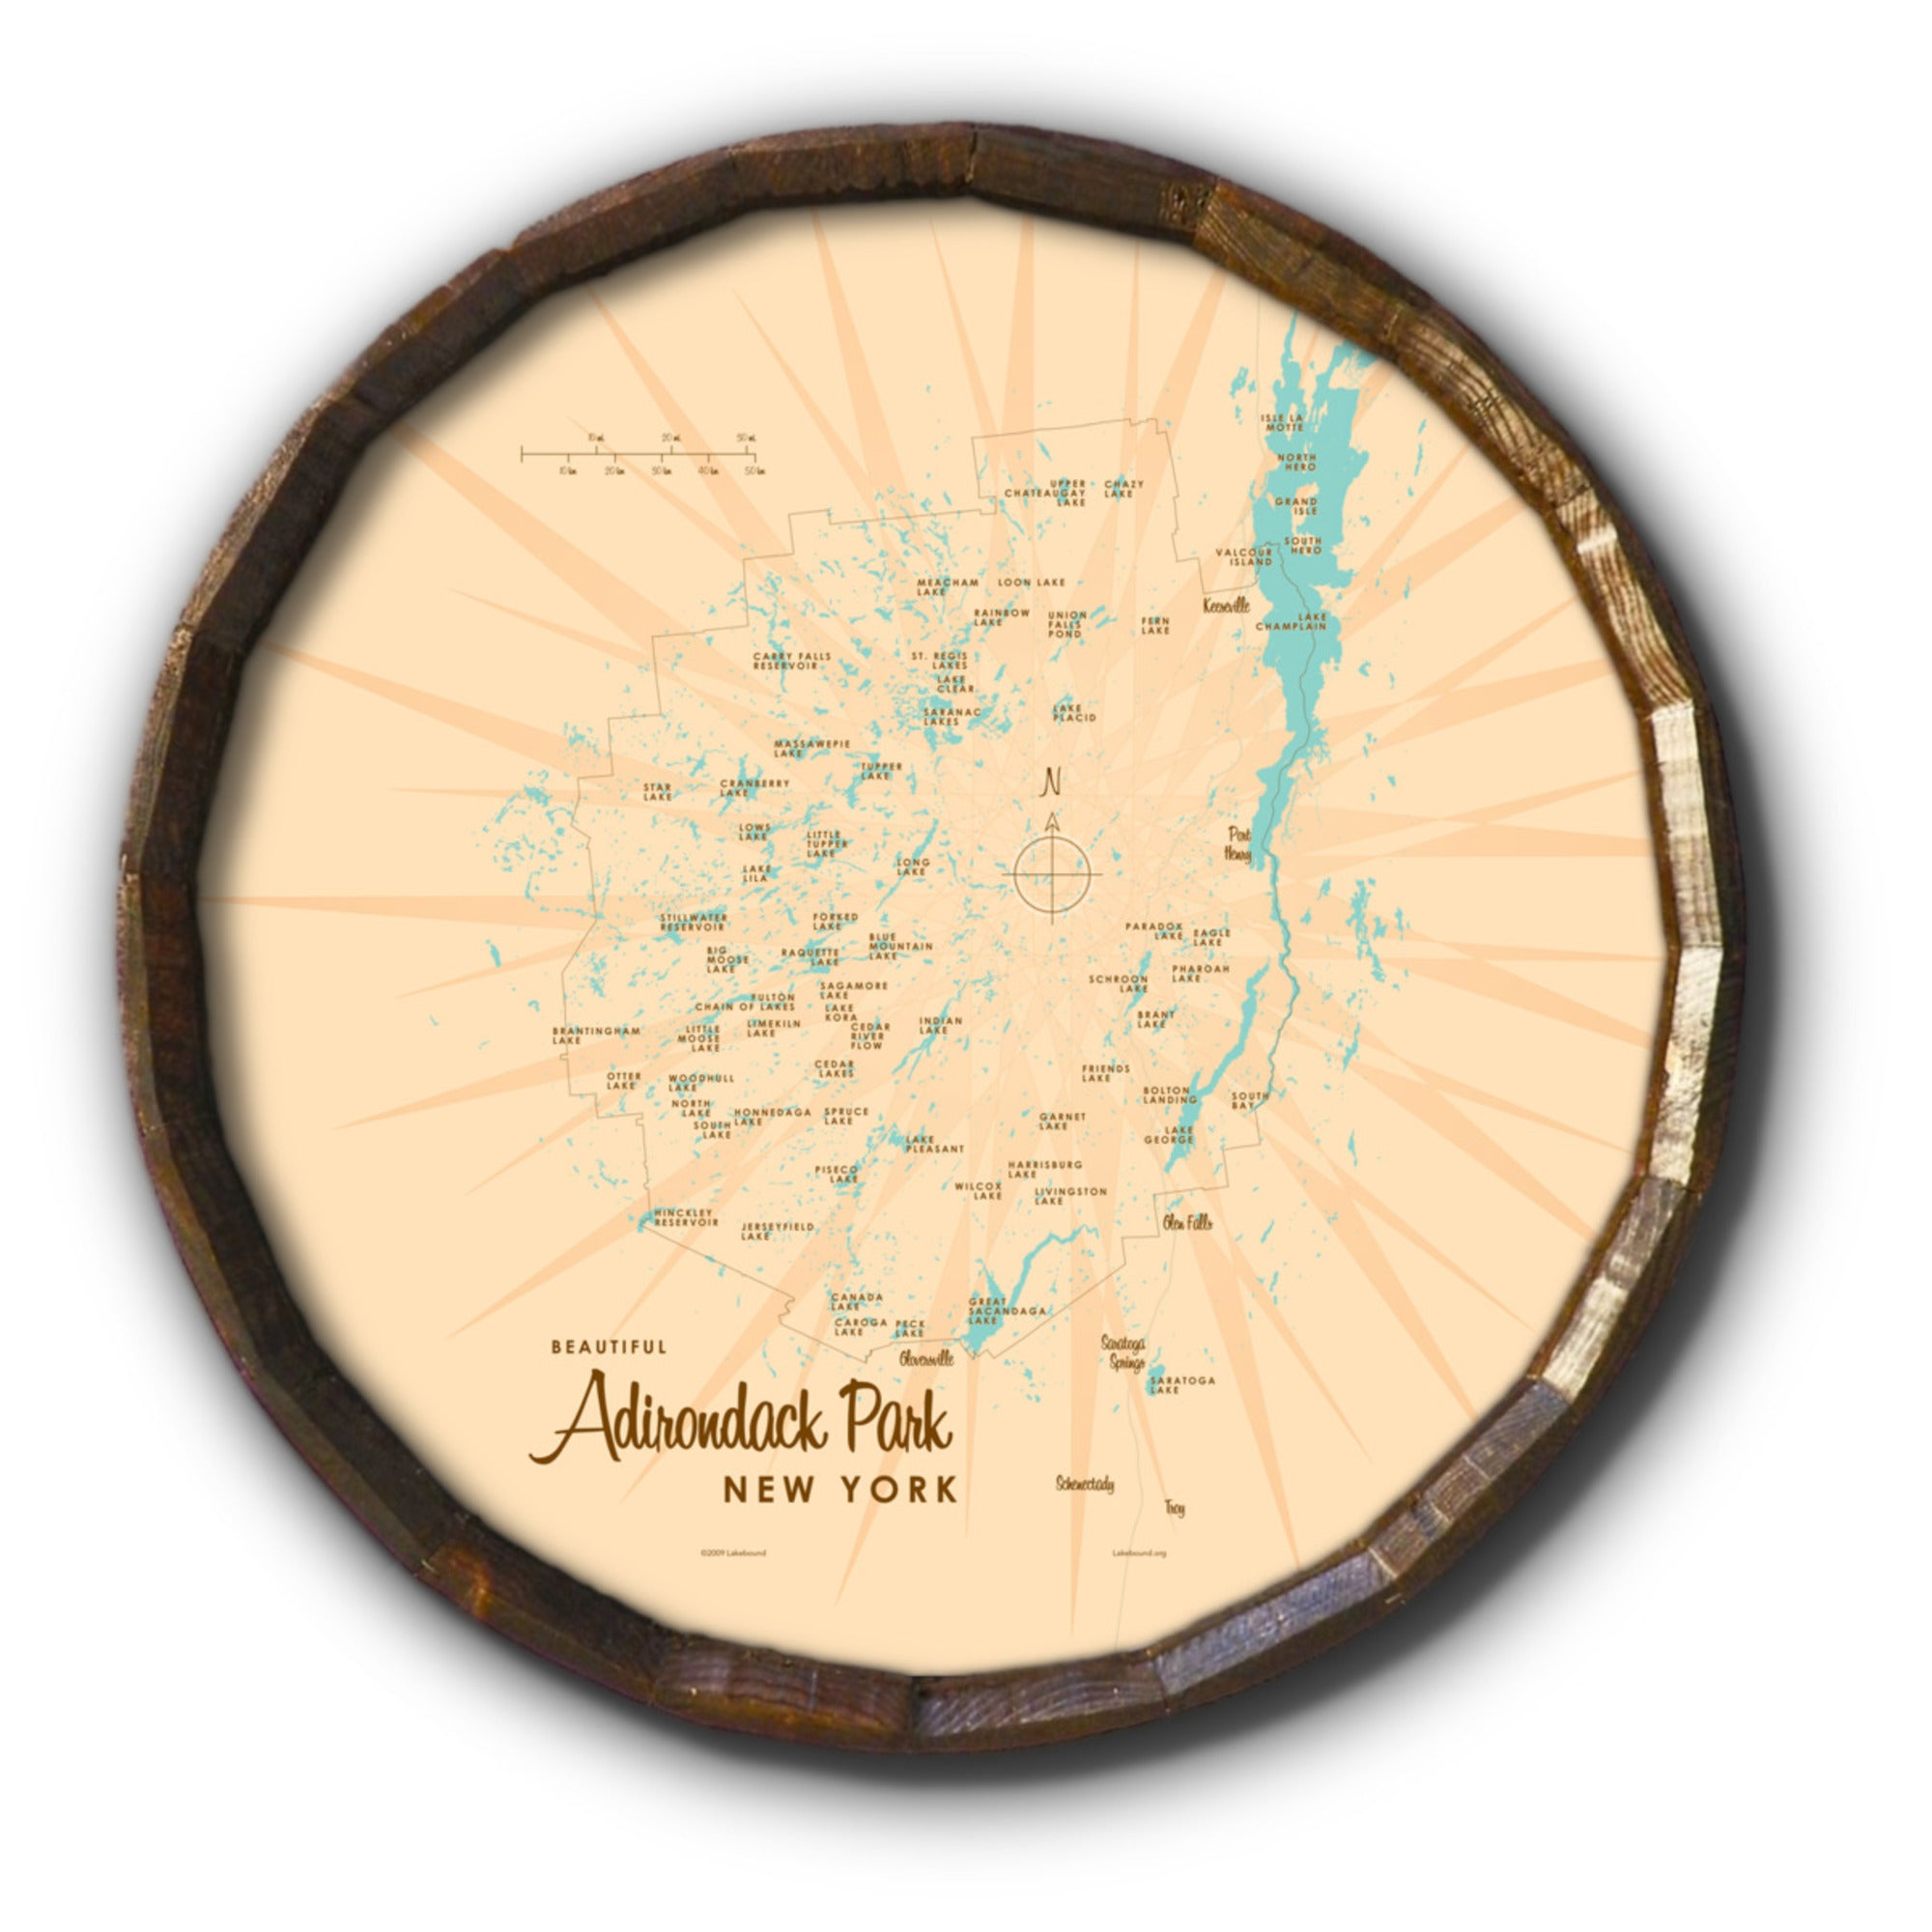 Adirondack Park, New York, Barrel End Map Art